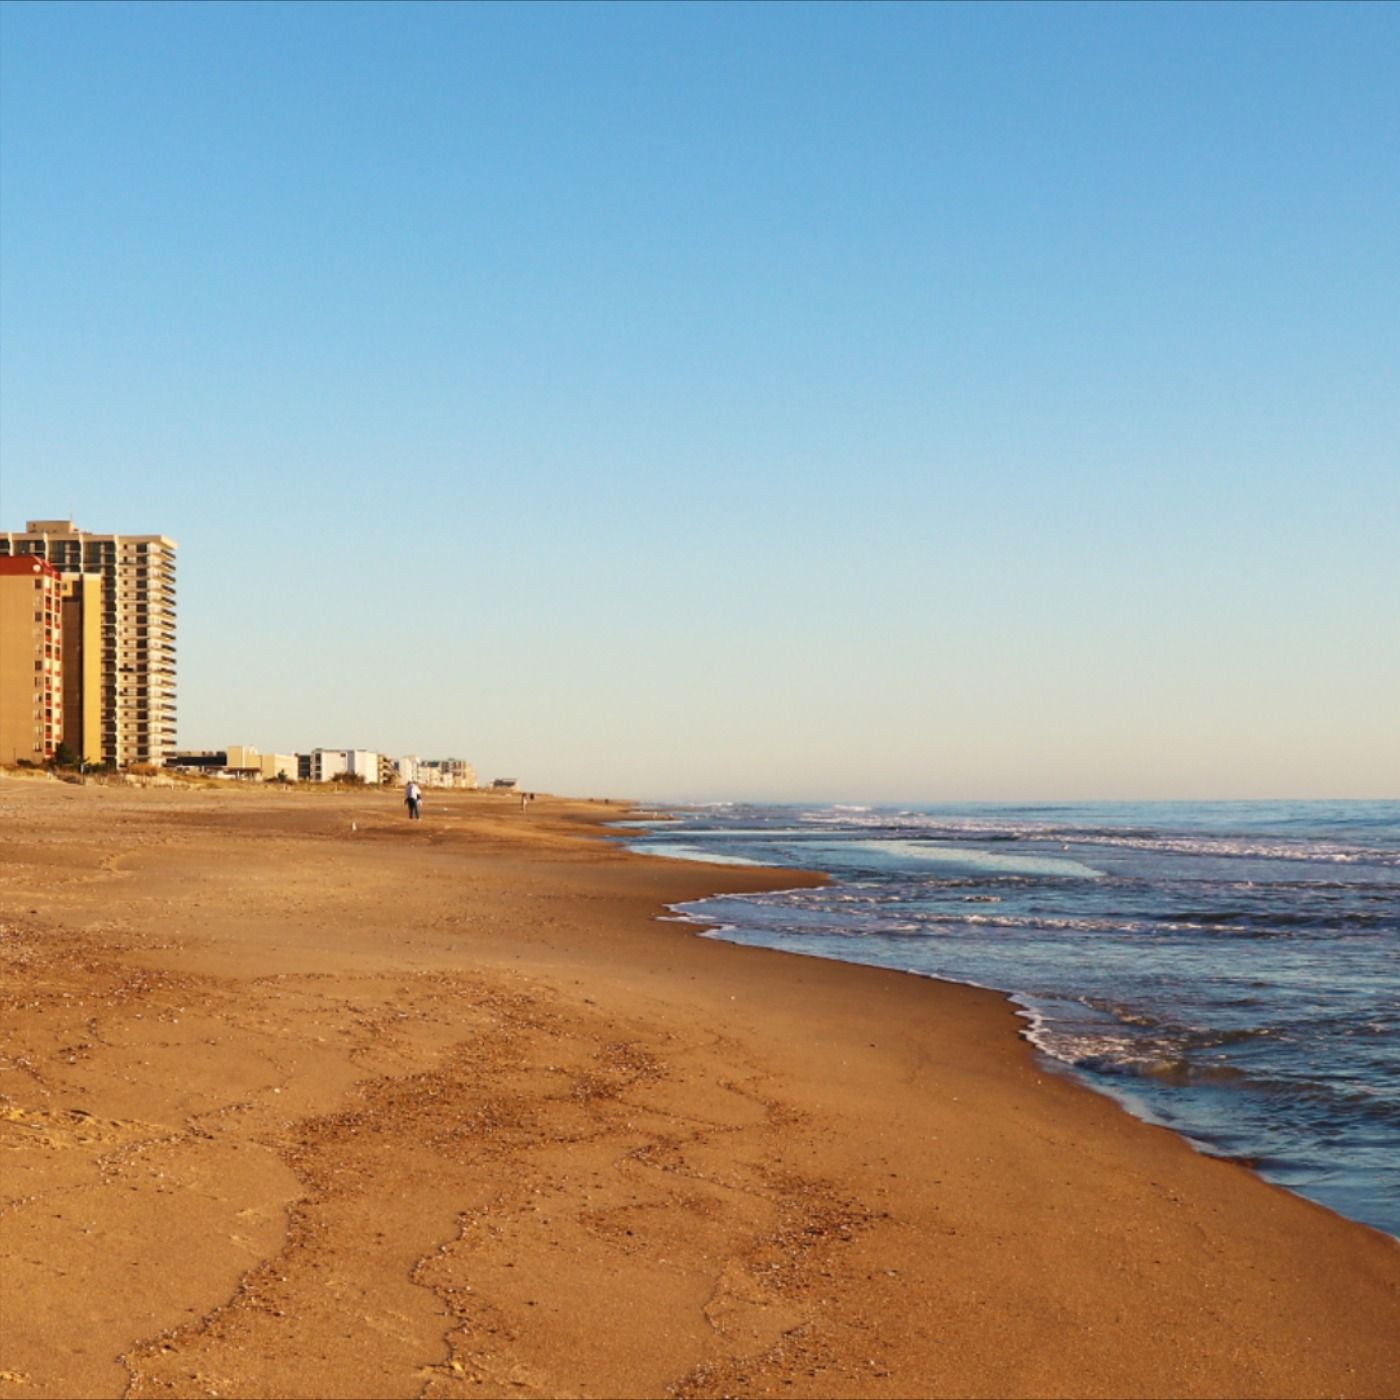 Spend Thanksgiving And The Winter Holidays In Ocmd Ocmd Is The Perfect Spot For Your Family To Celebrate F East Coast Travel Ocean City Ocean City Maryland